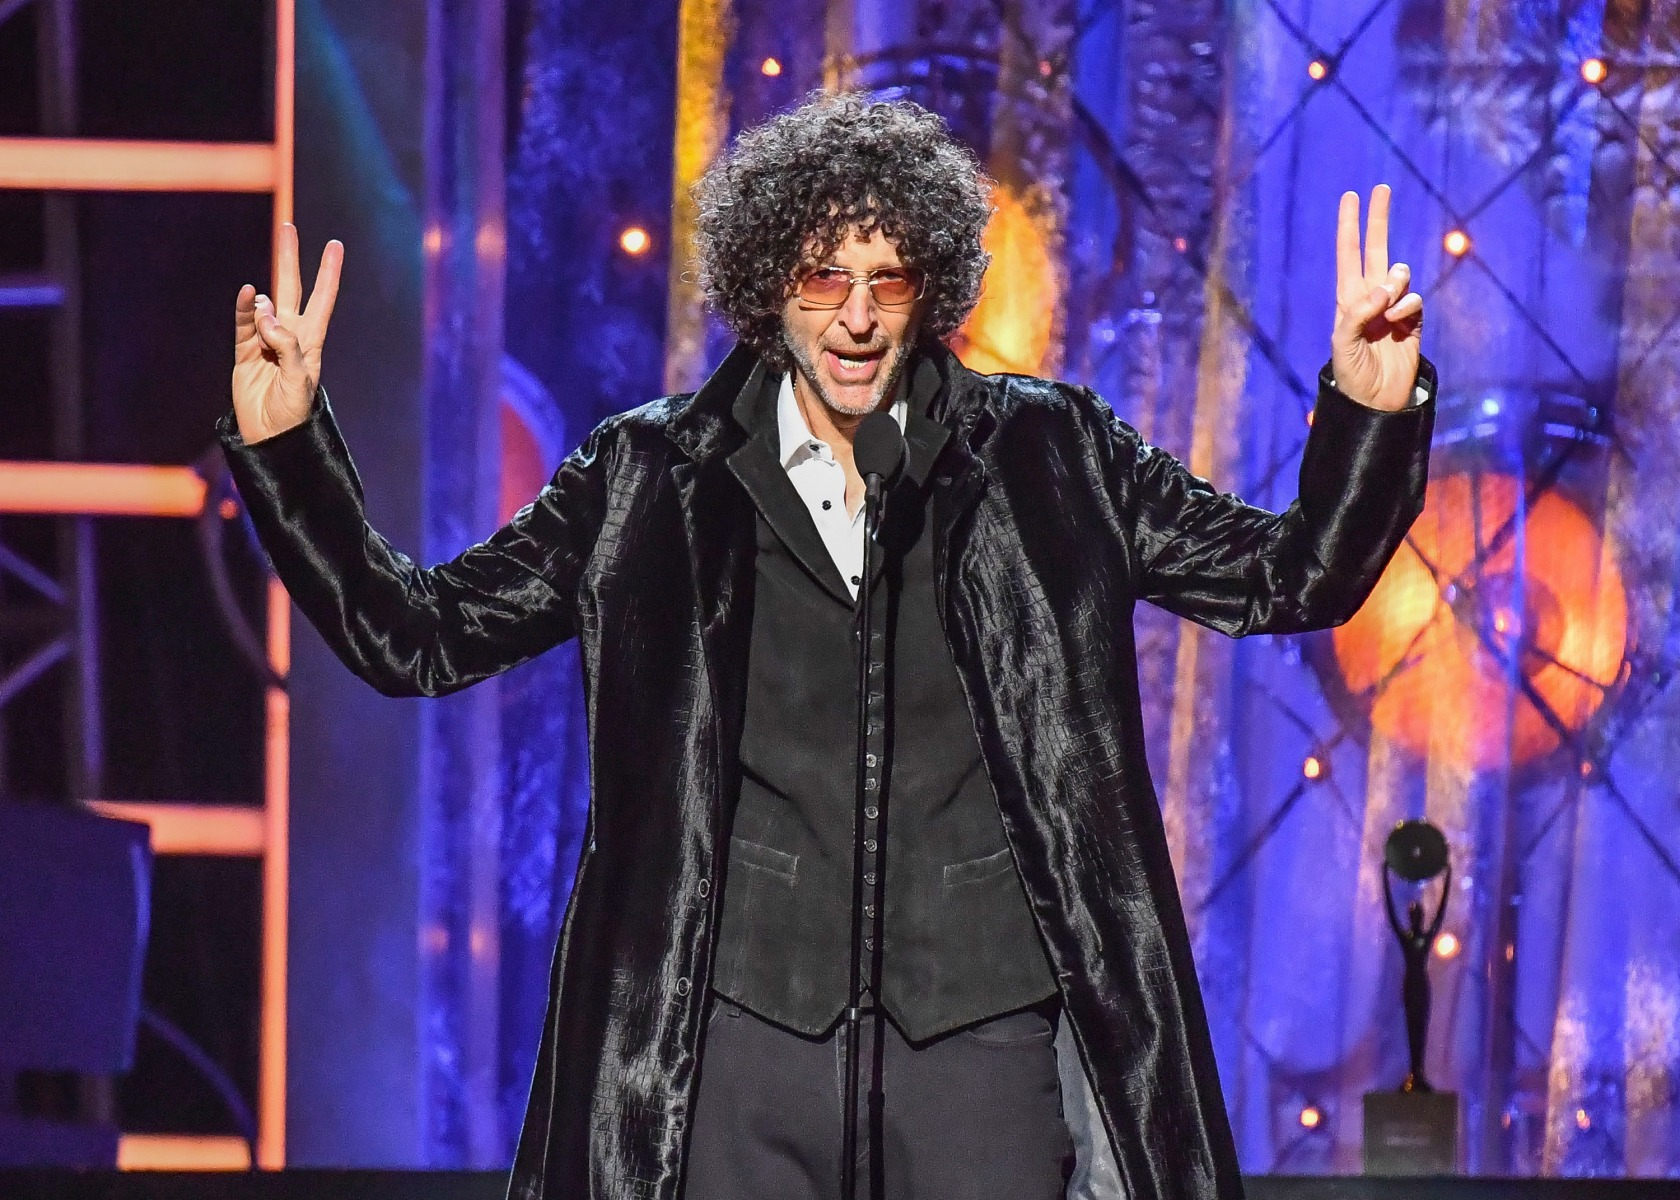 Howard Stern opened up in a new interview with New York Times Magazine